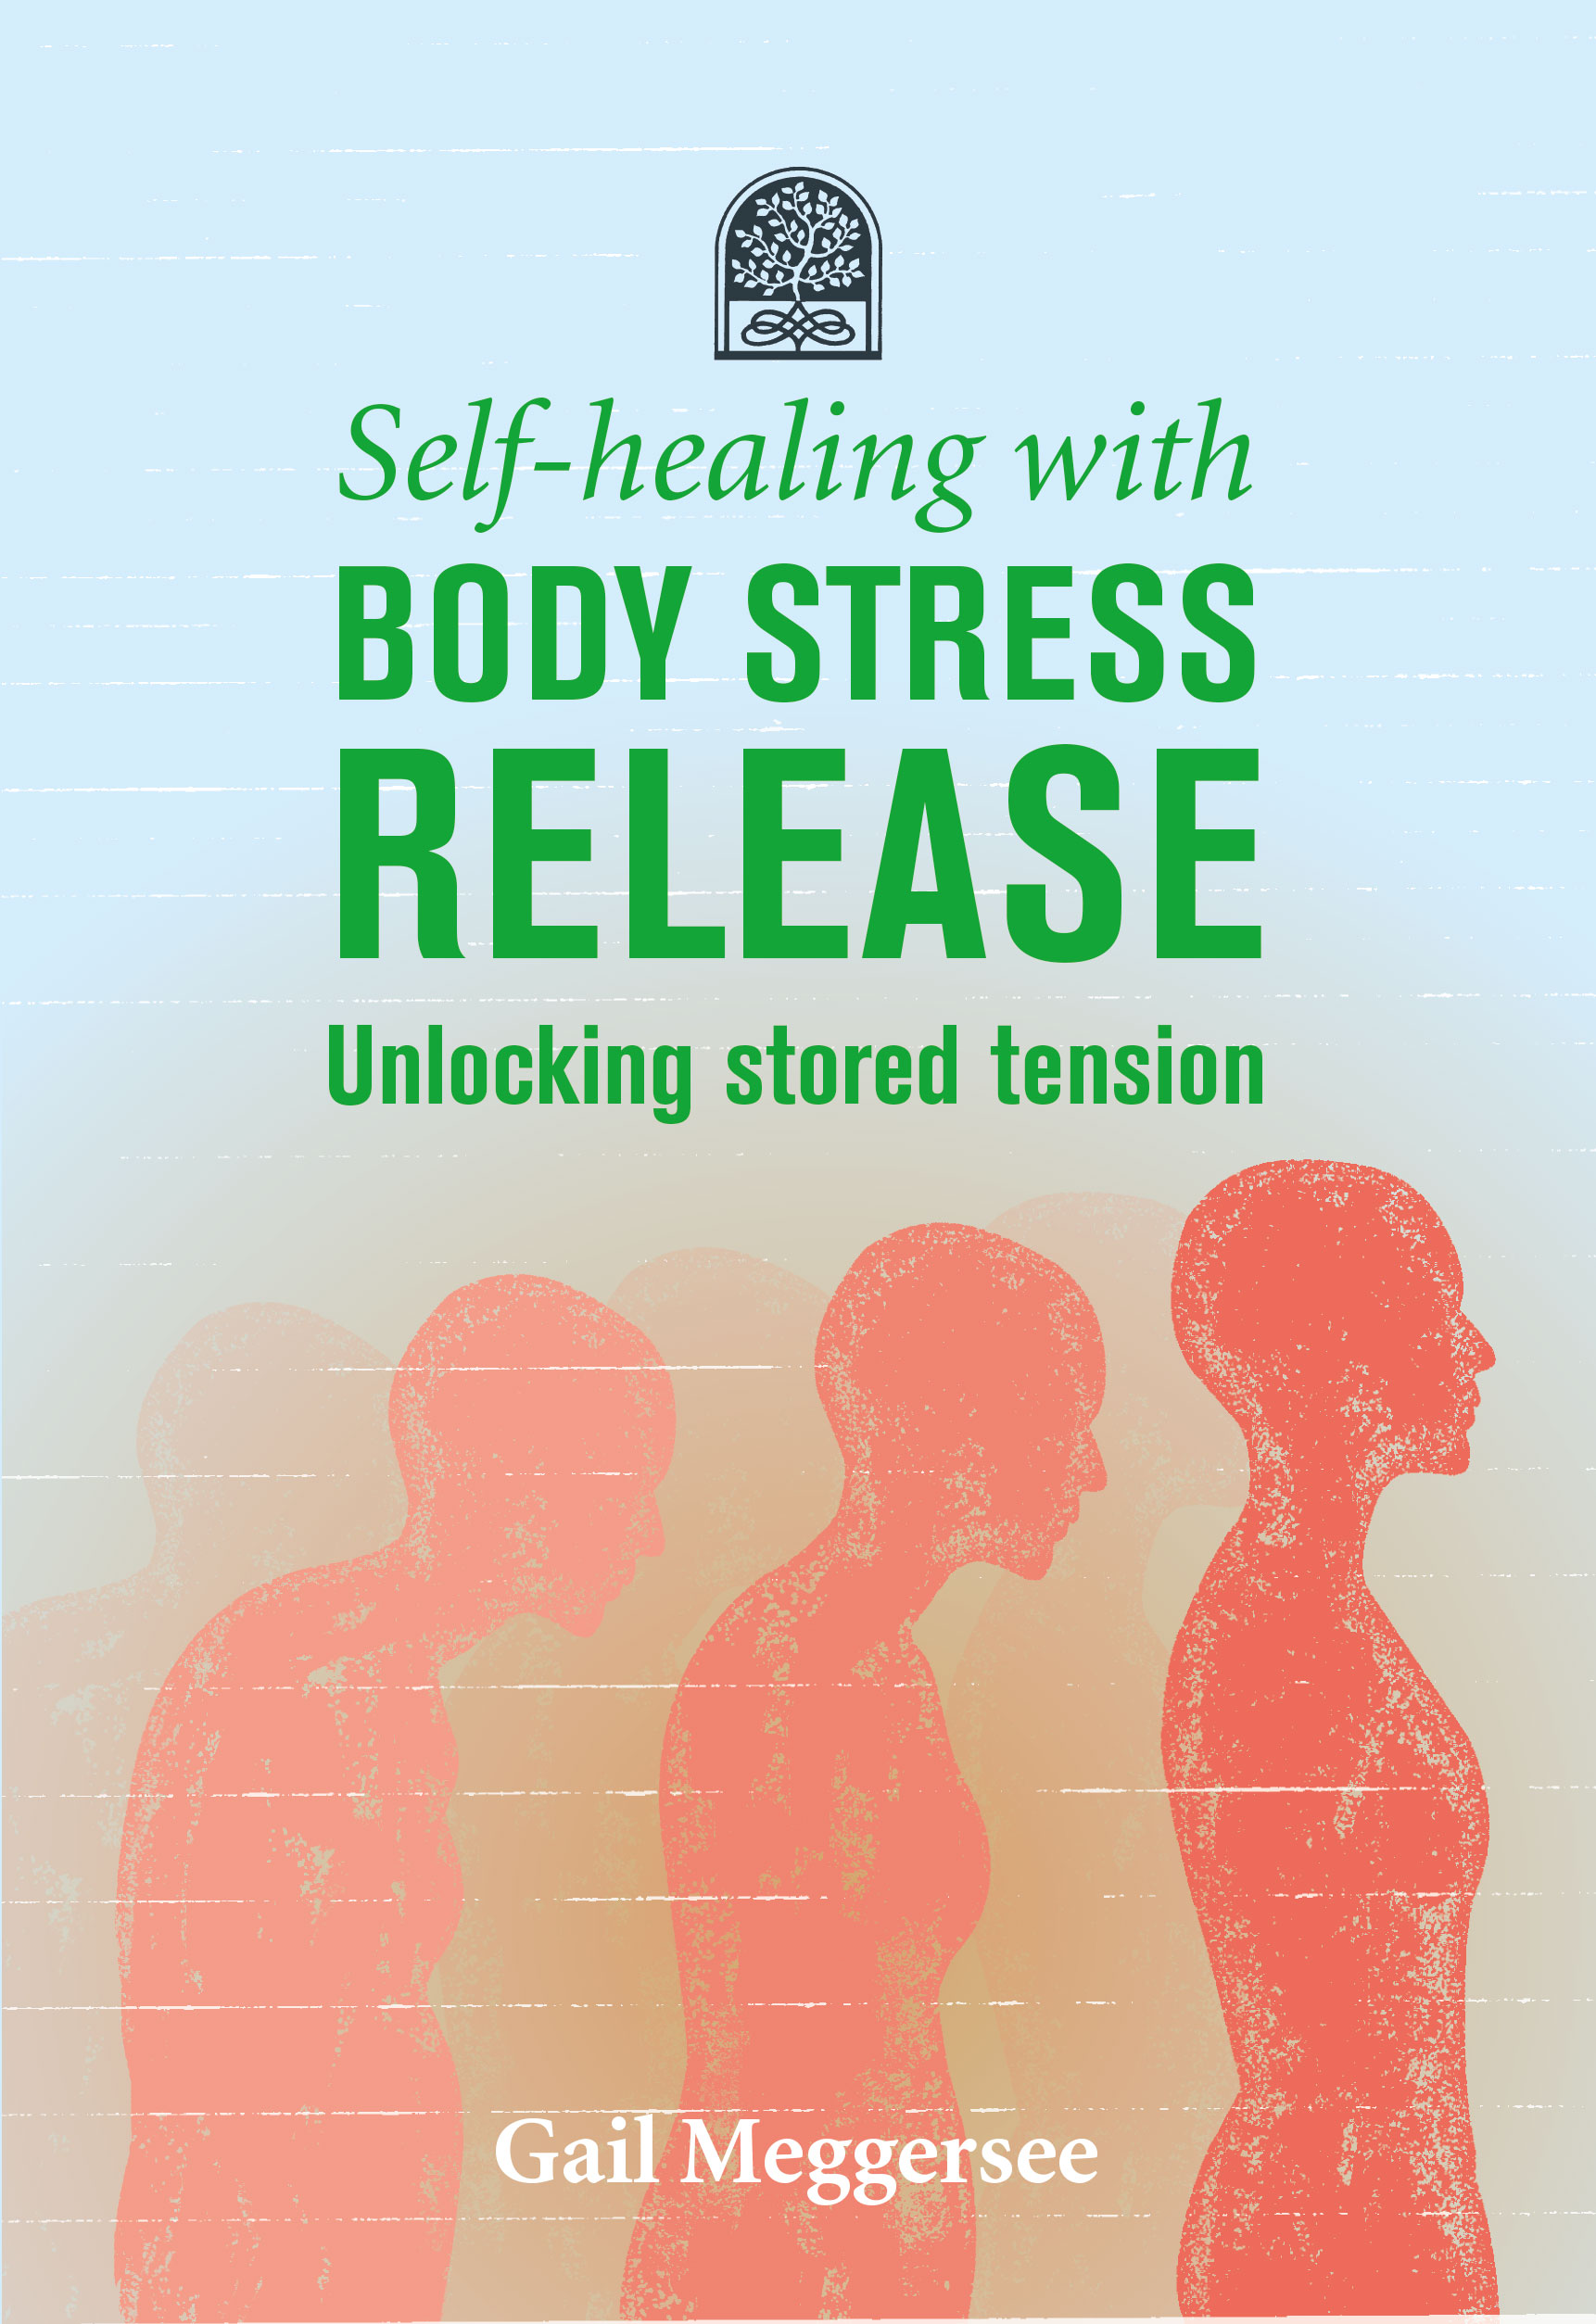 Self-healing with Body Stress Release - Gail Meggersee